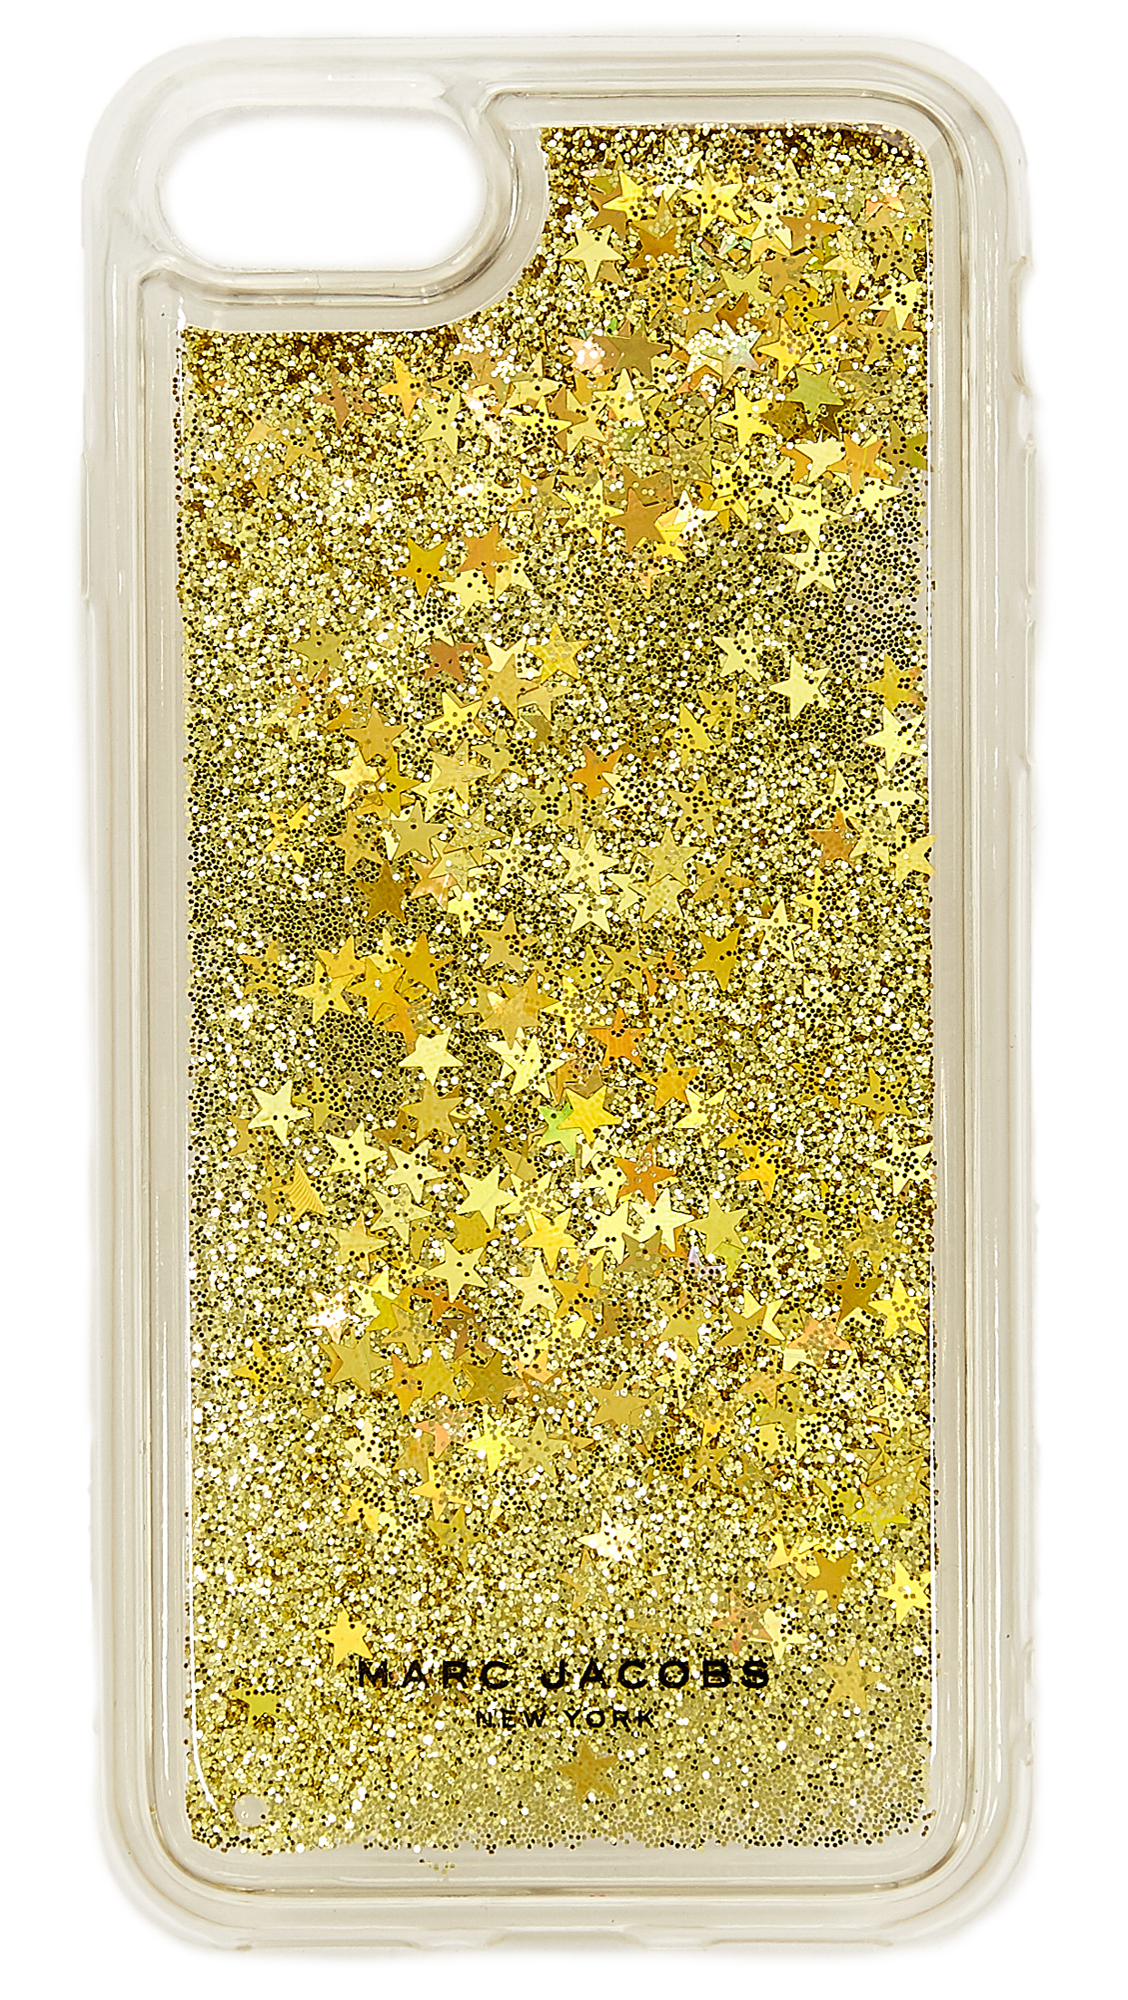 Marc Jacobs Floating Glitter iPhone 7 / 8 Case - Gold